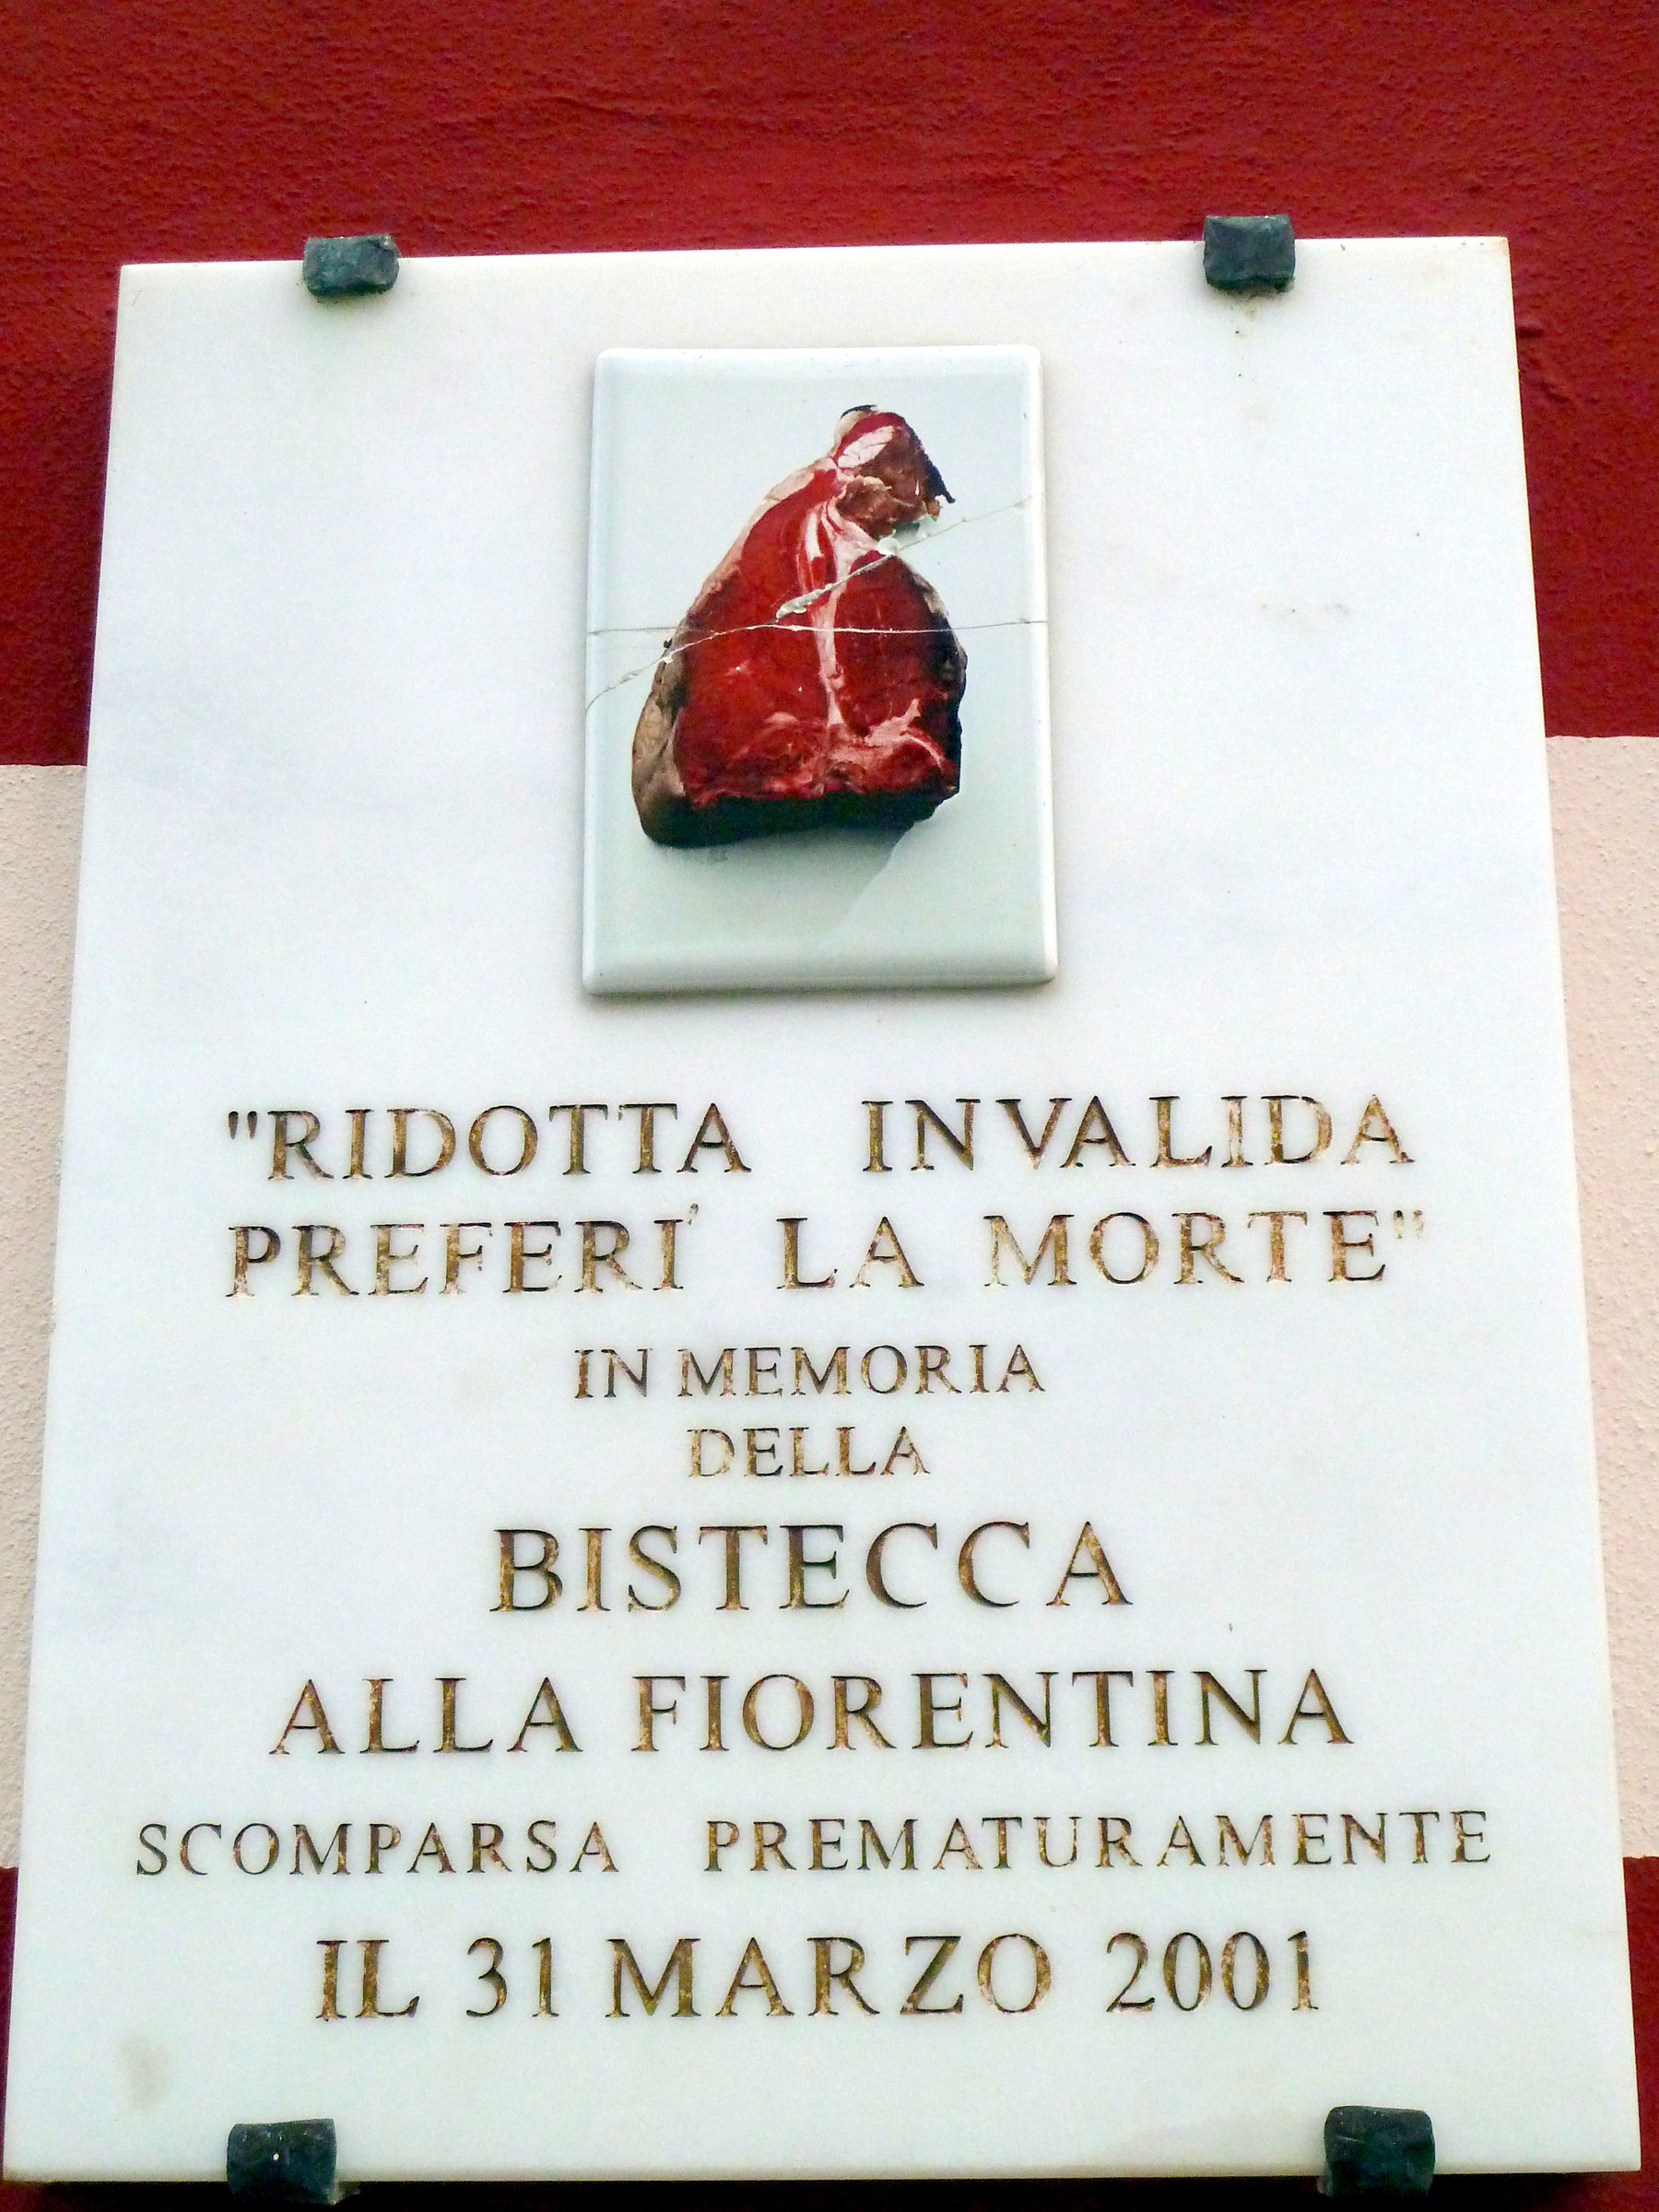 Sign erected during time of bistecca alla fiorentina ban